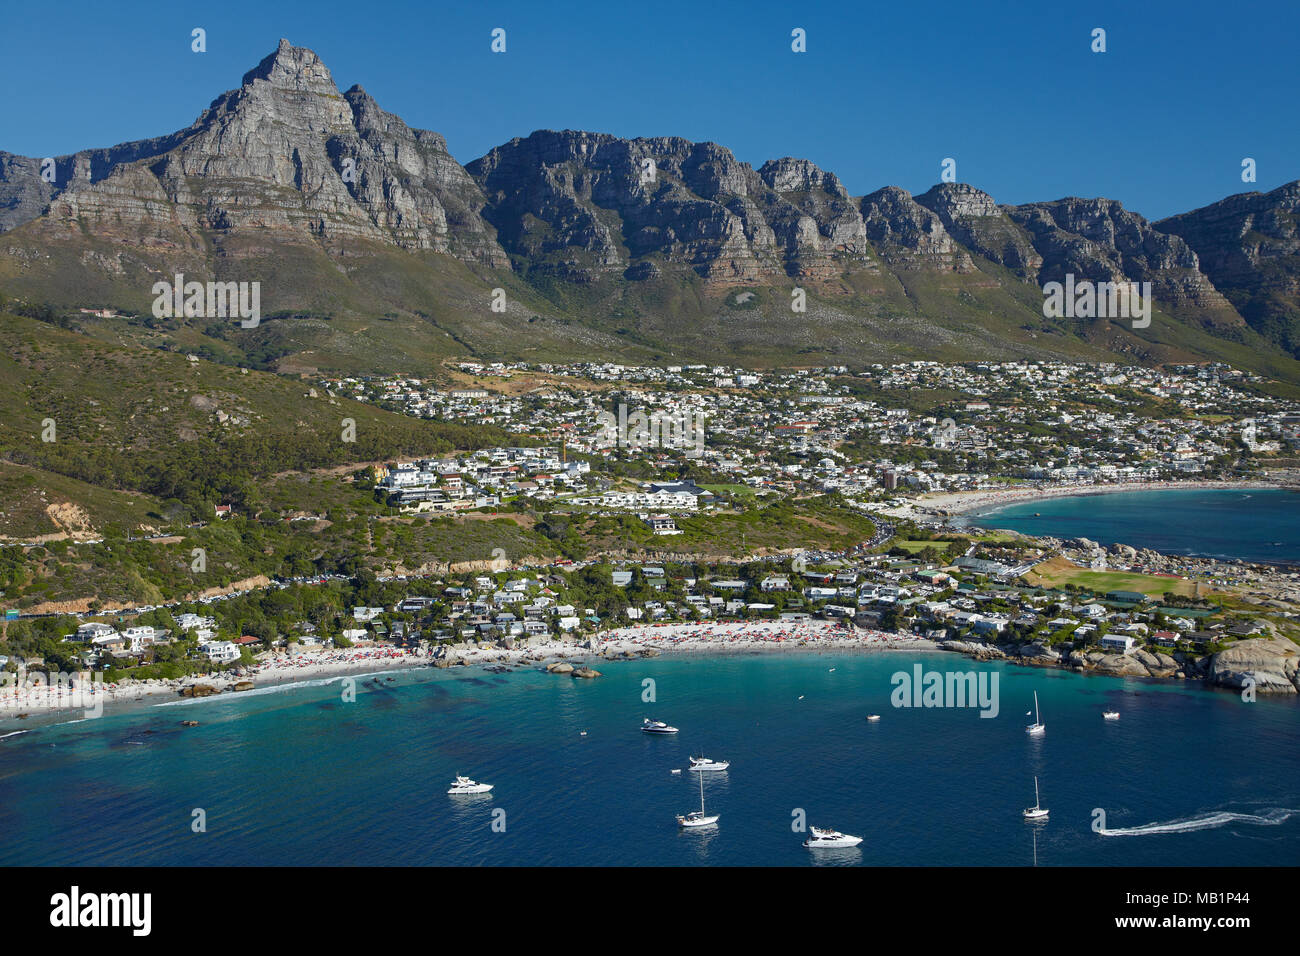 Clifton Beach,  Table Mountain, and The Twelve Apostles, Cape Town, South Africa - aerial - Stock Image